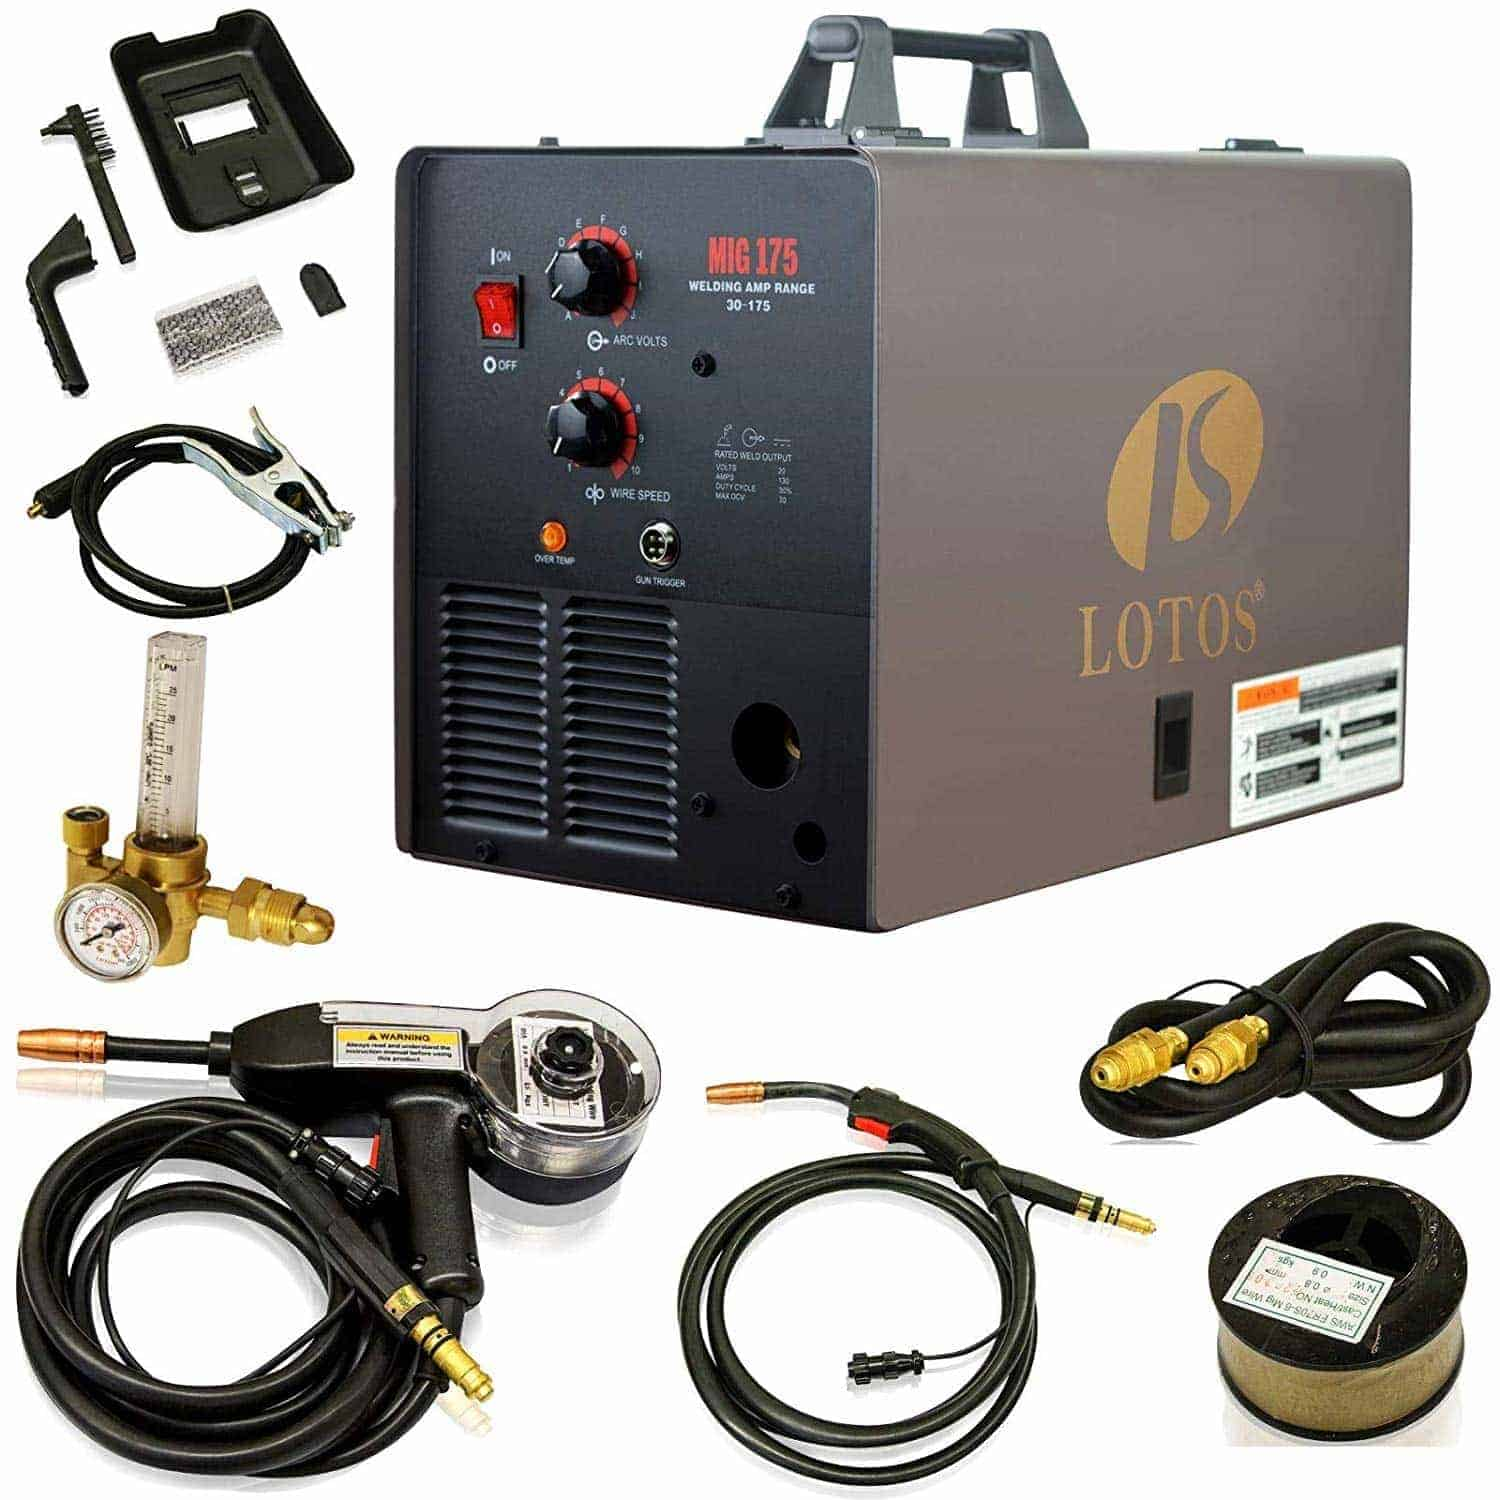 LOTOS MIG175 - Best Aluminum Welder for Beginners and Experts